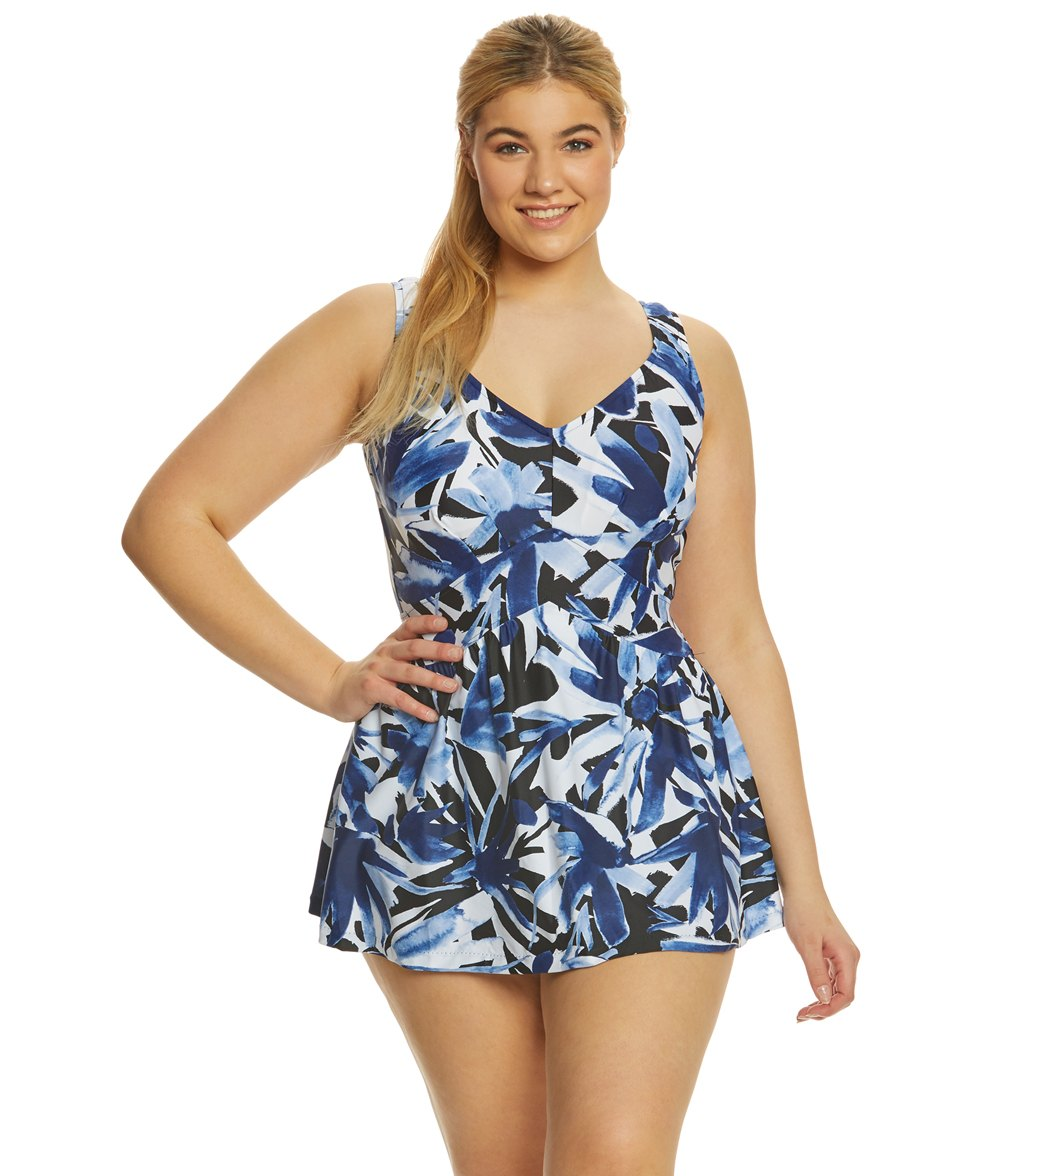 387bfcb2c157 Maxine Plus Size Ink Empire Swimdress at SwimOutlet.com - Free ...